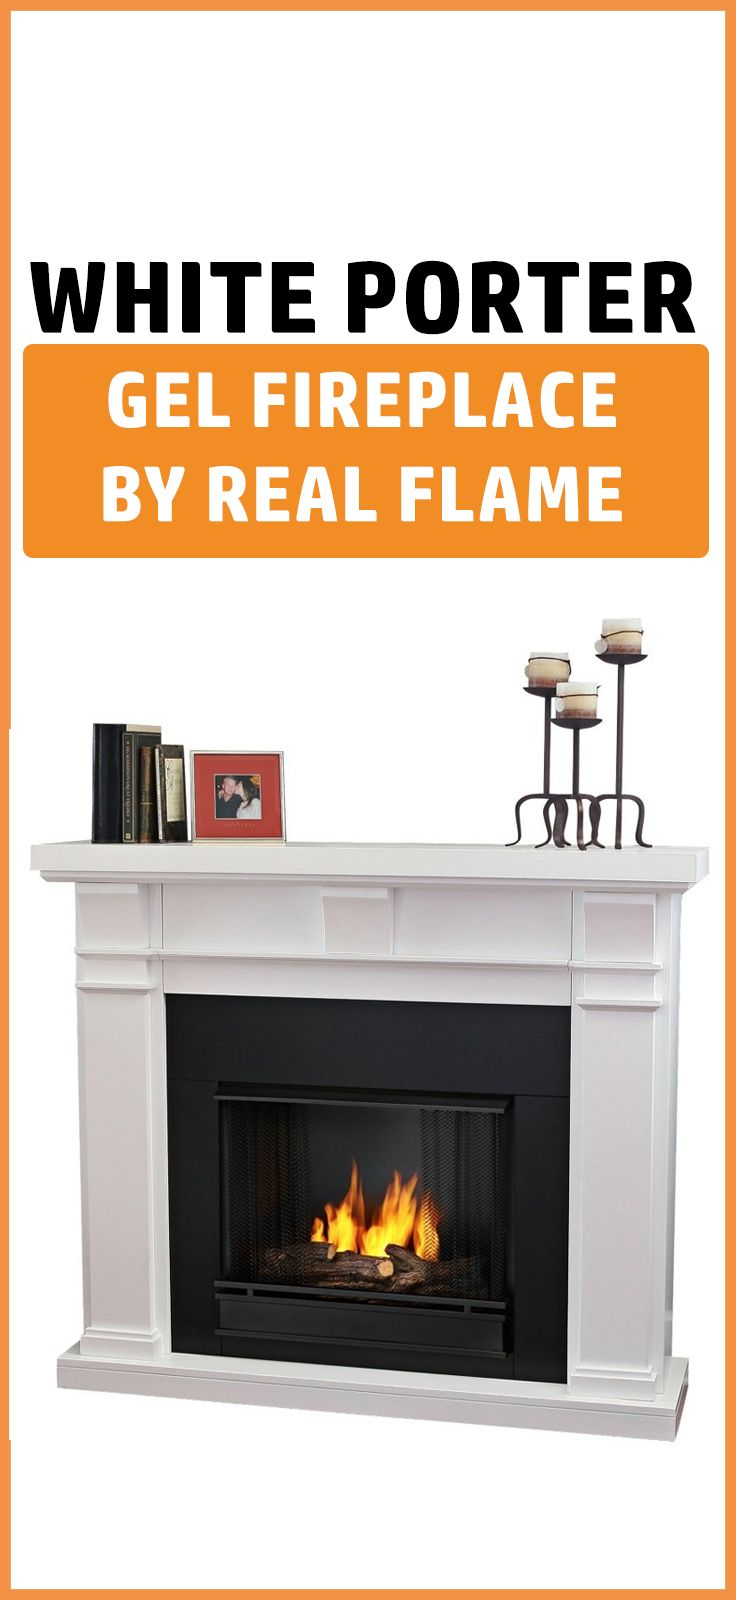 20 best gel fireplace images on pinterest fireplaces gel